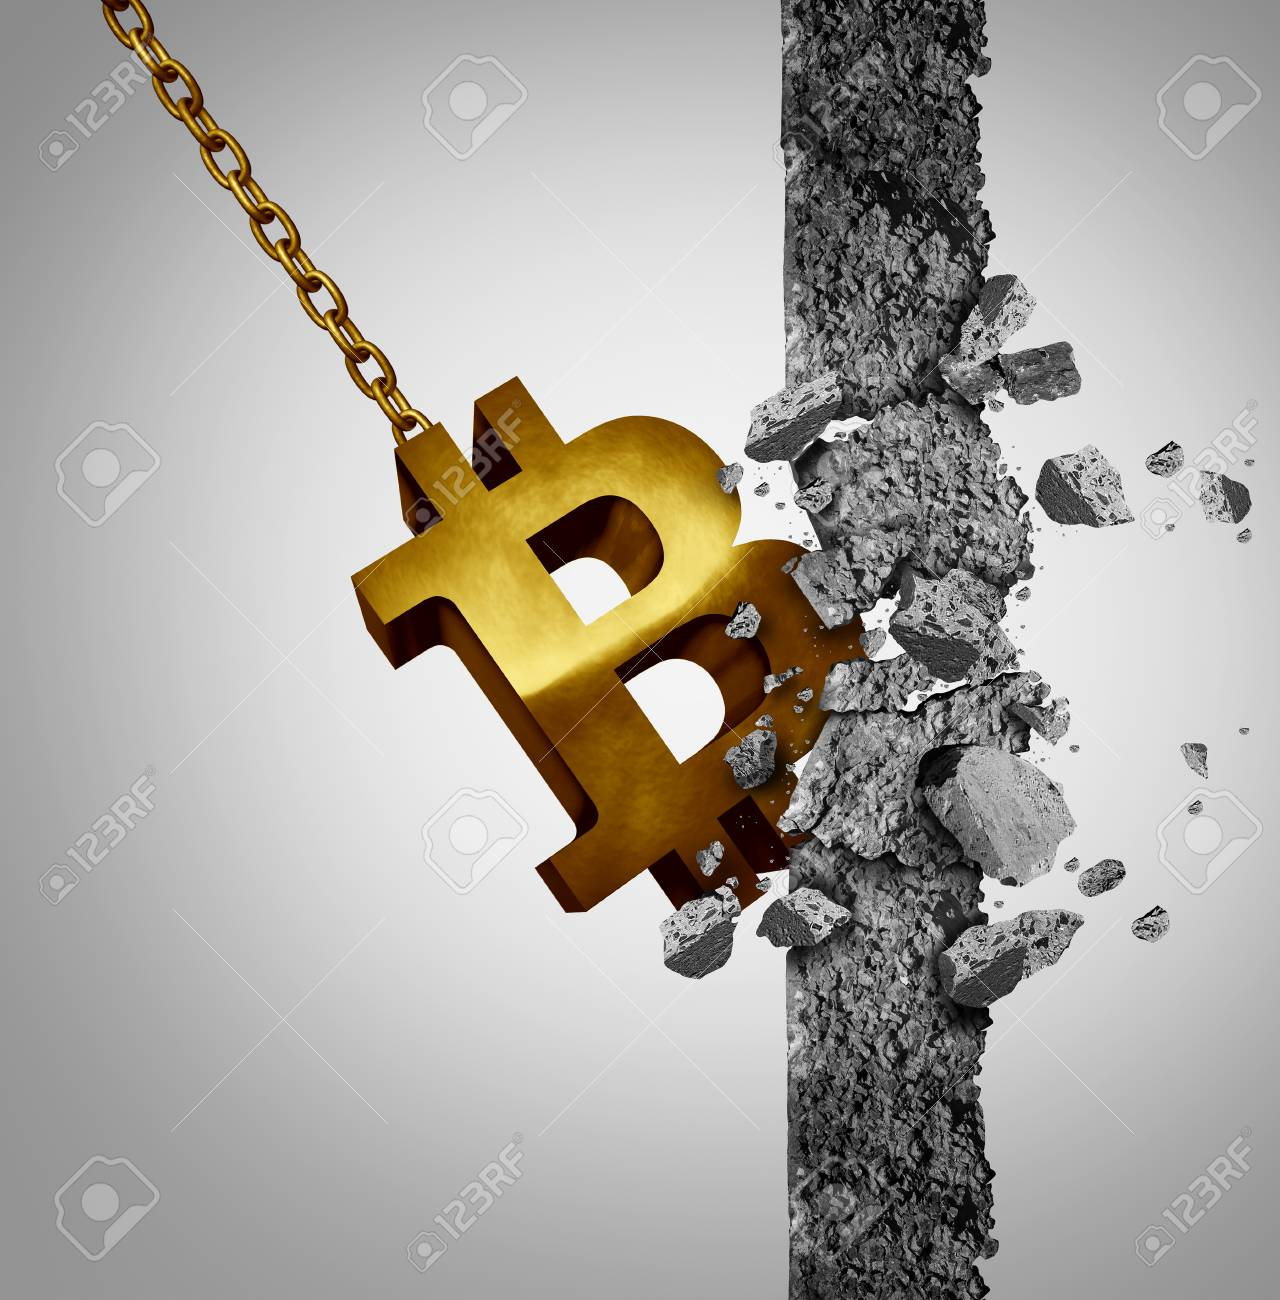 https://previews.123rf.com/images/lightwise/lightwise1711/lightwise171100077/90855451-bitcoin-disruptive-new-economic-and-financial-currency-technology-as-a-wrecking-ball-destroying-a-wa.jpg